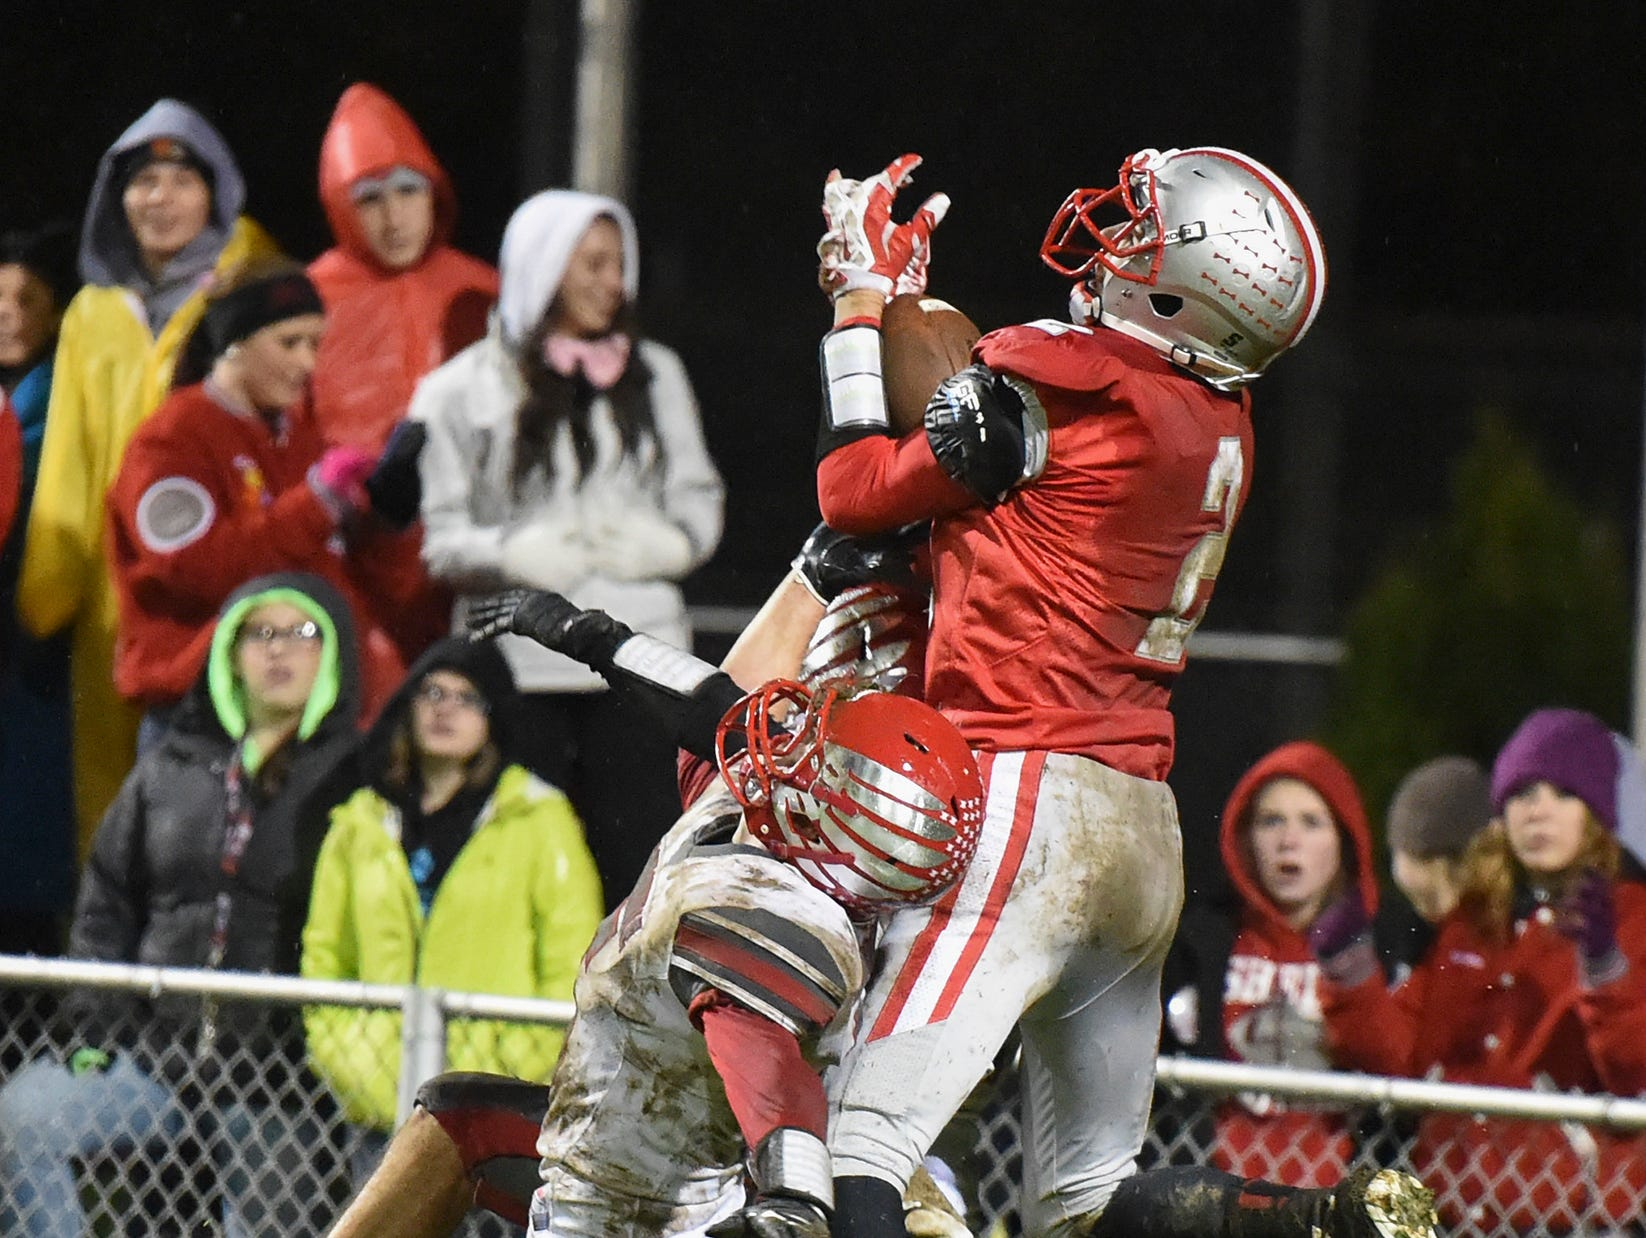 Shelby receiver Cody Stine, a record-setting high jumper, goes up for a pass last fall against Loudonville. Stine will play for the North all-stars.